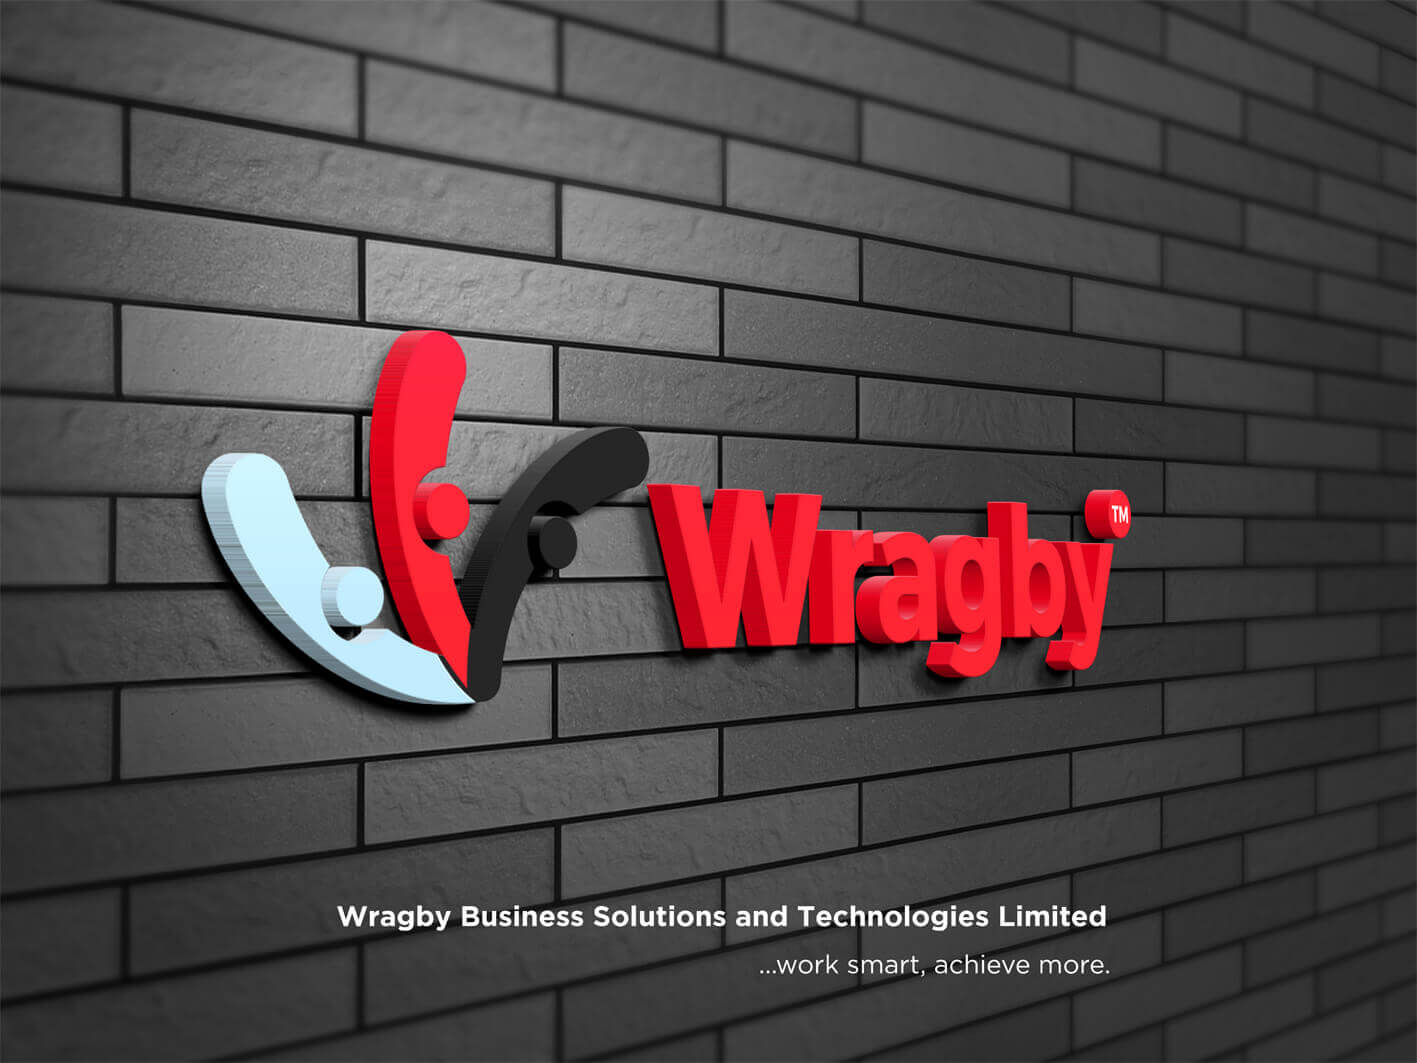 Wragby-Business-Solutions-&-Technologies